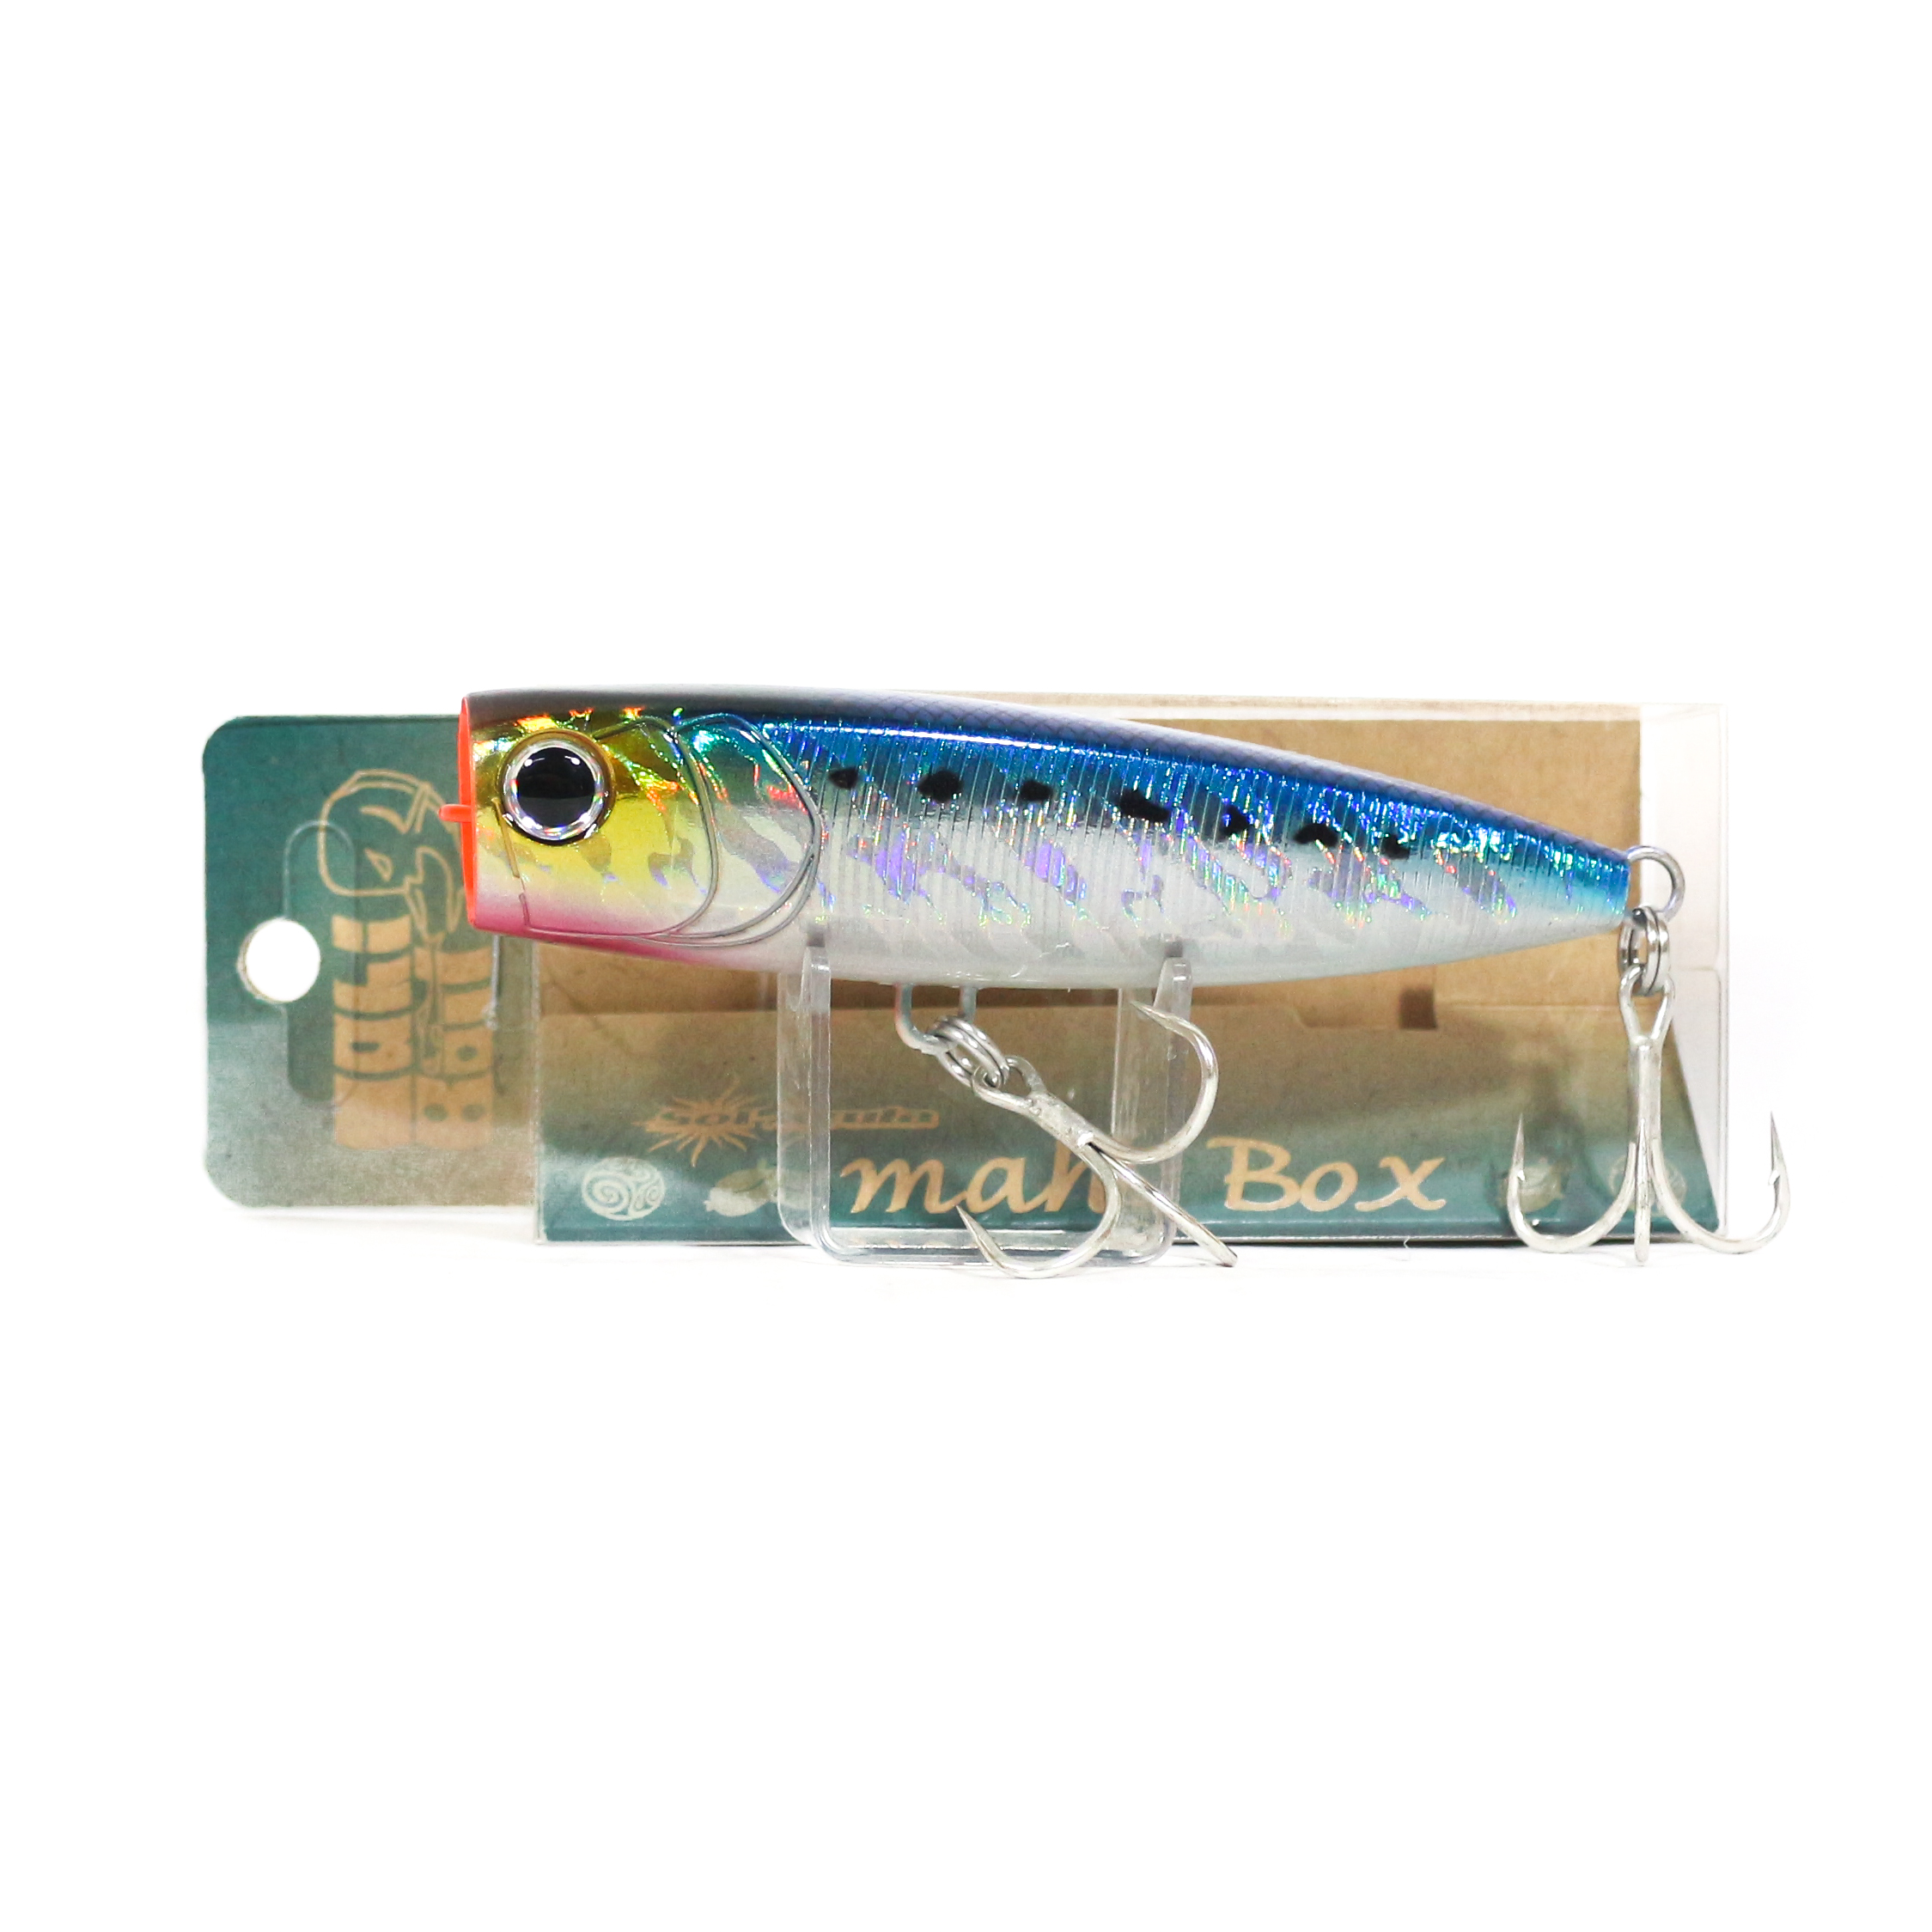 Mangrove Studio Mahi Box Popper 100 mm 28 grams Floating Lure MH-2 (1490)